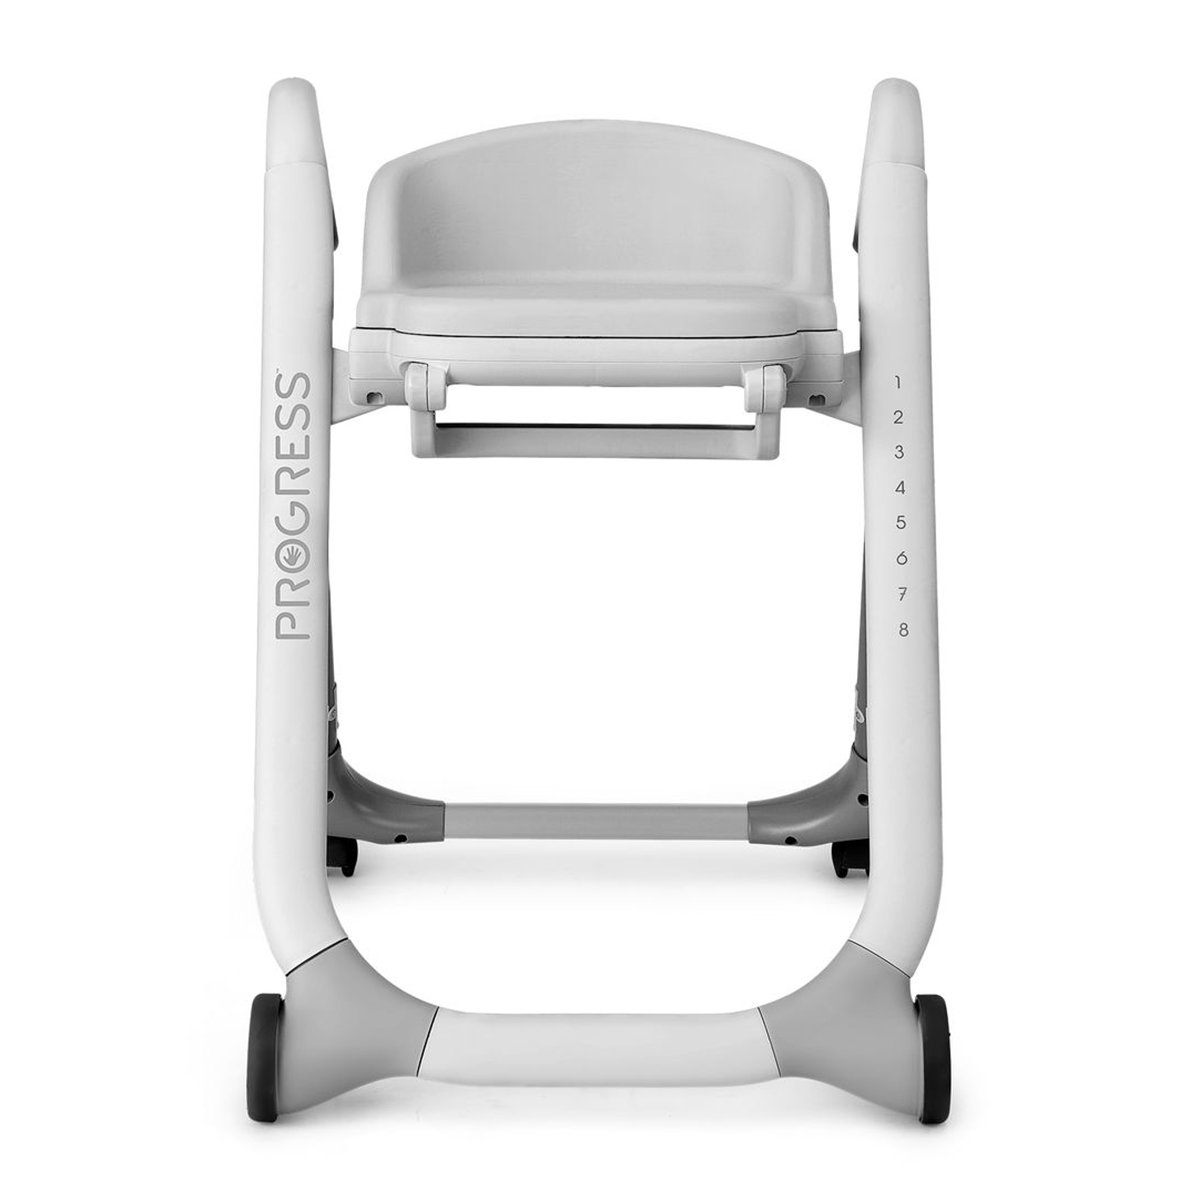 Calypso Open Box Chicco Polly Progress 5-in-1 Adjustable Booster Highchair